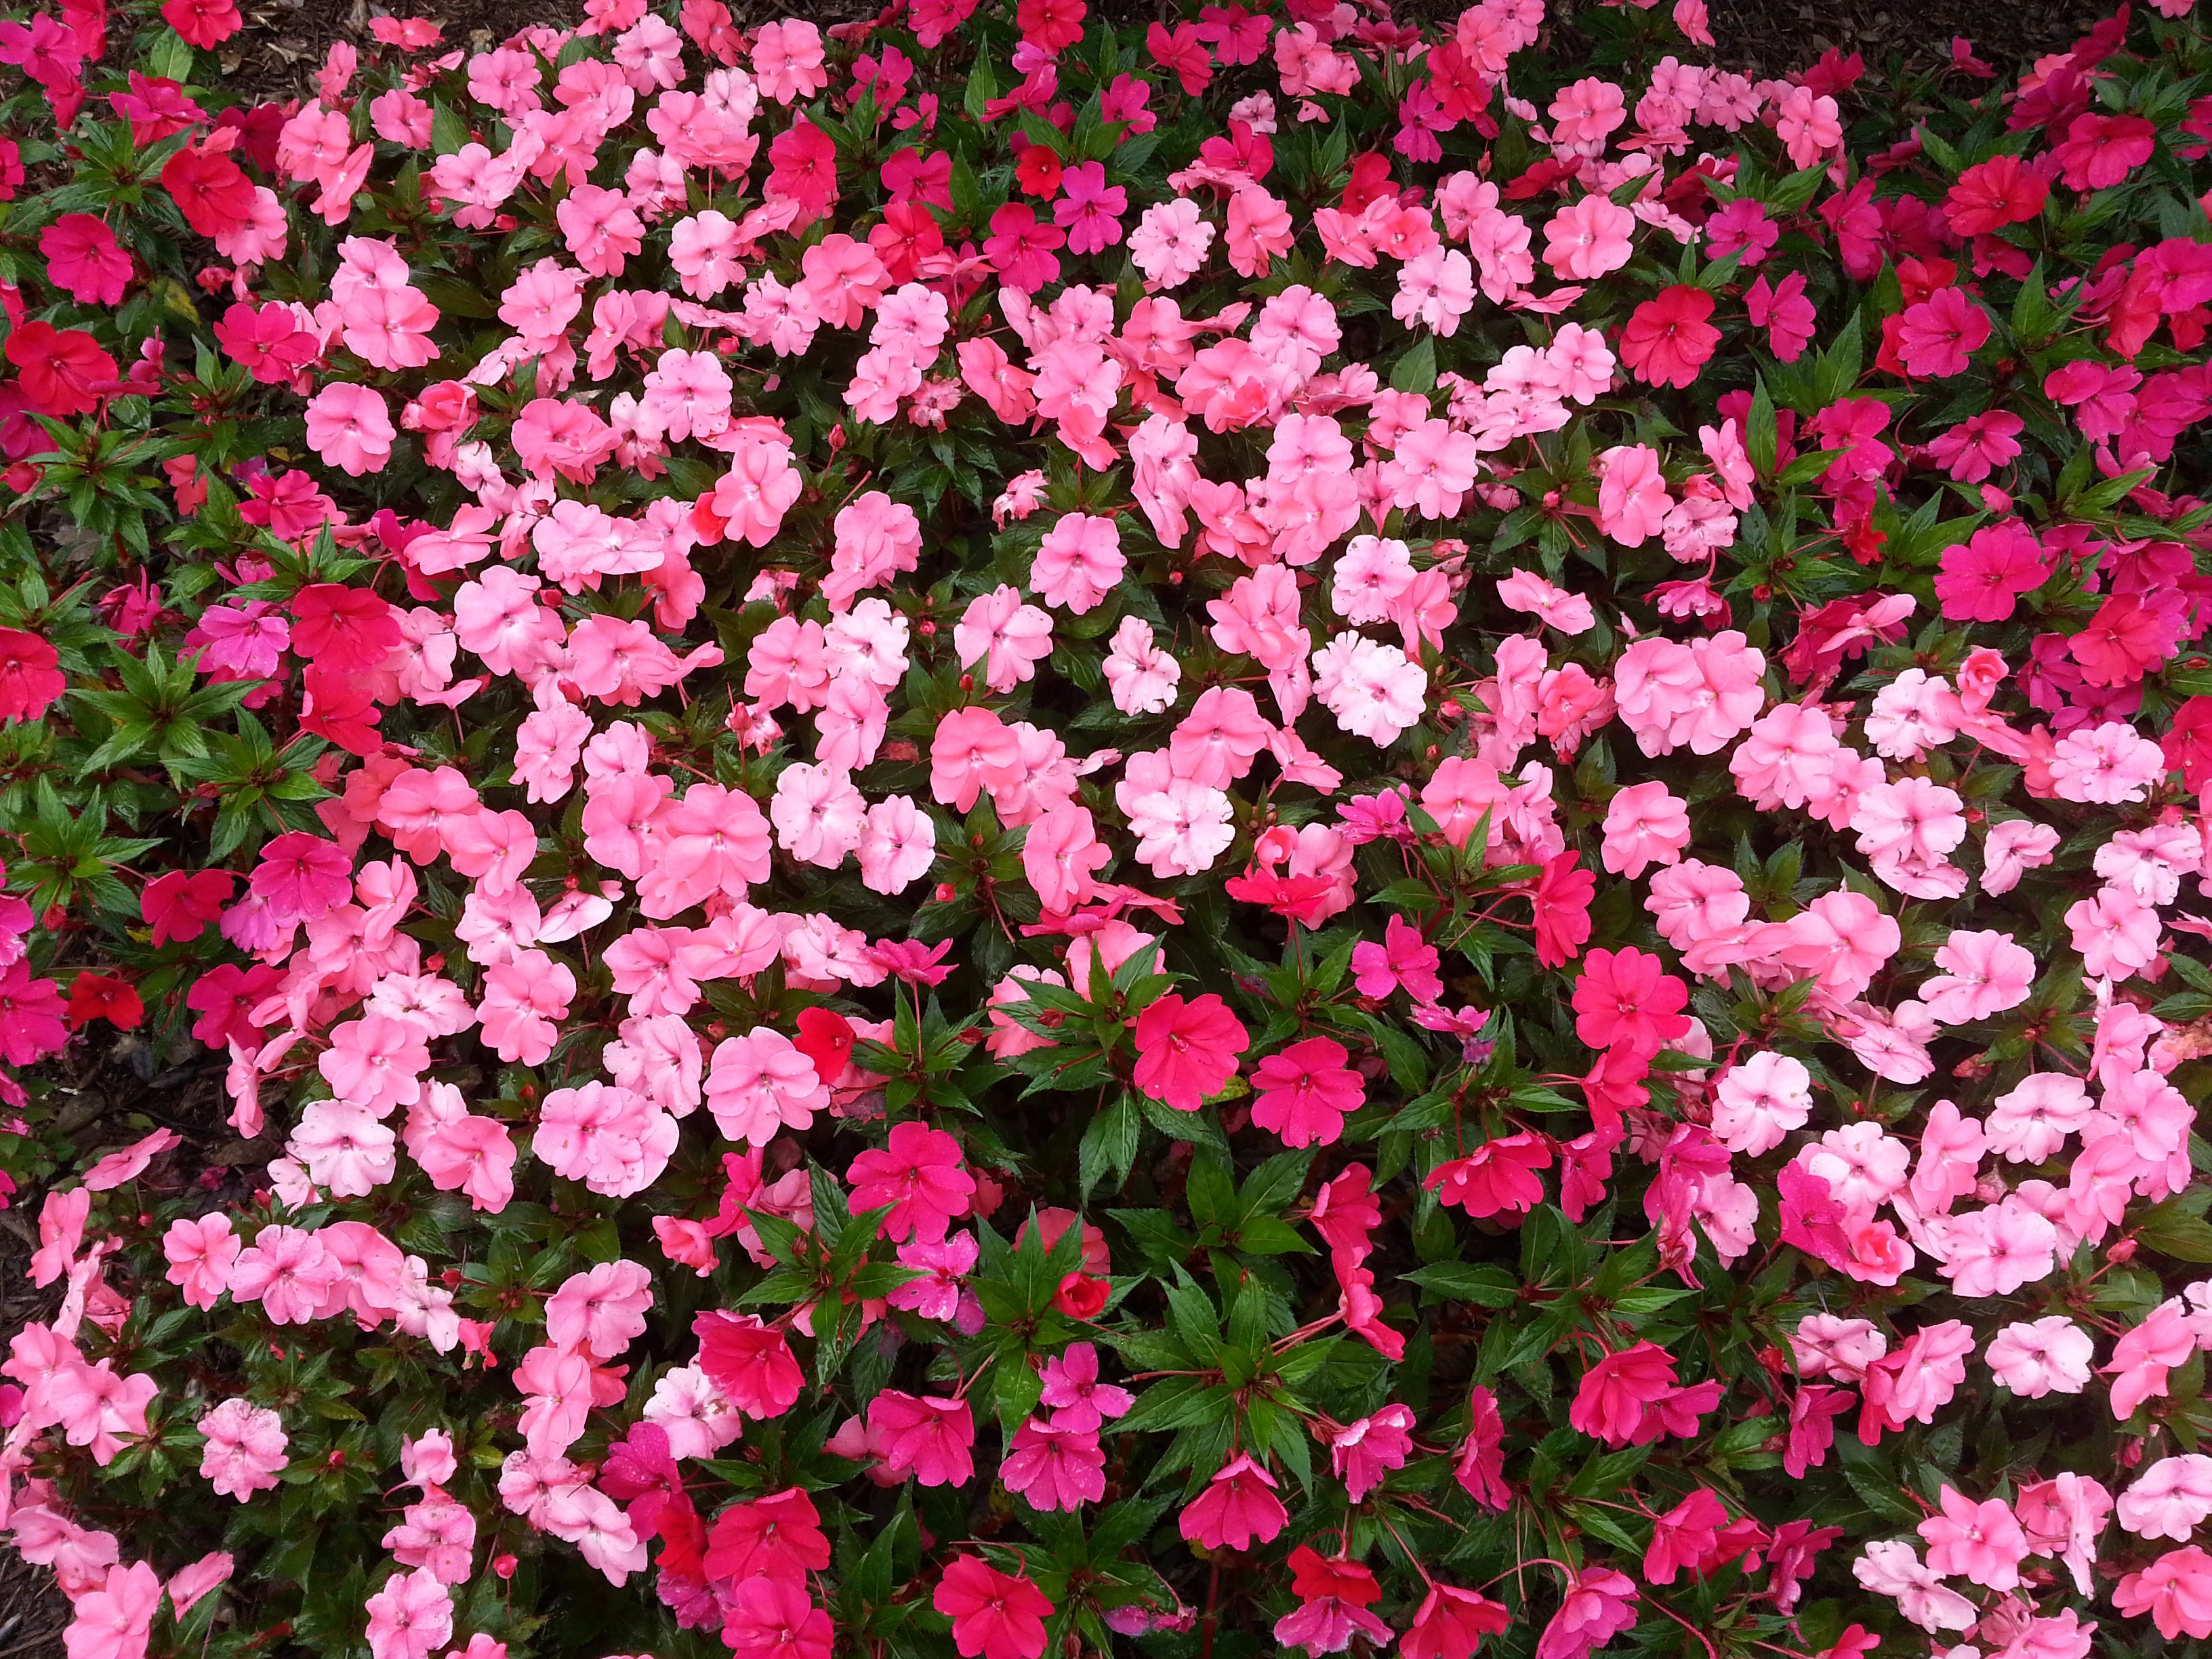 Red and Pink Petaled Flowers